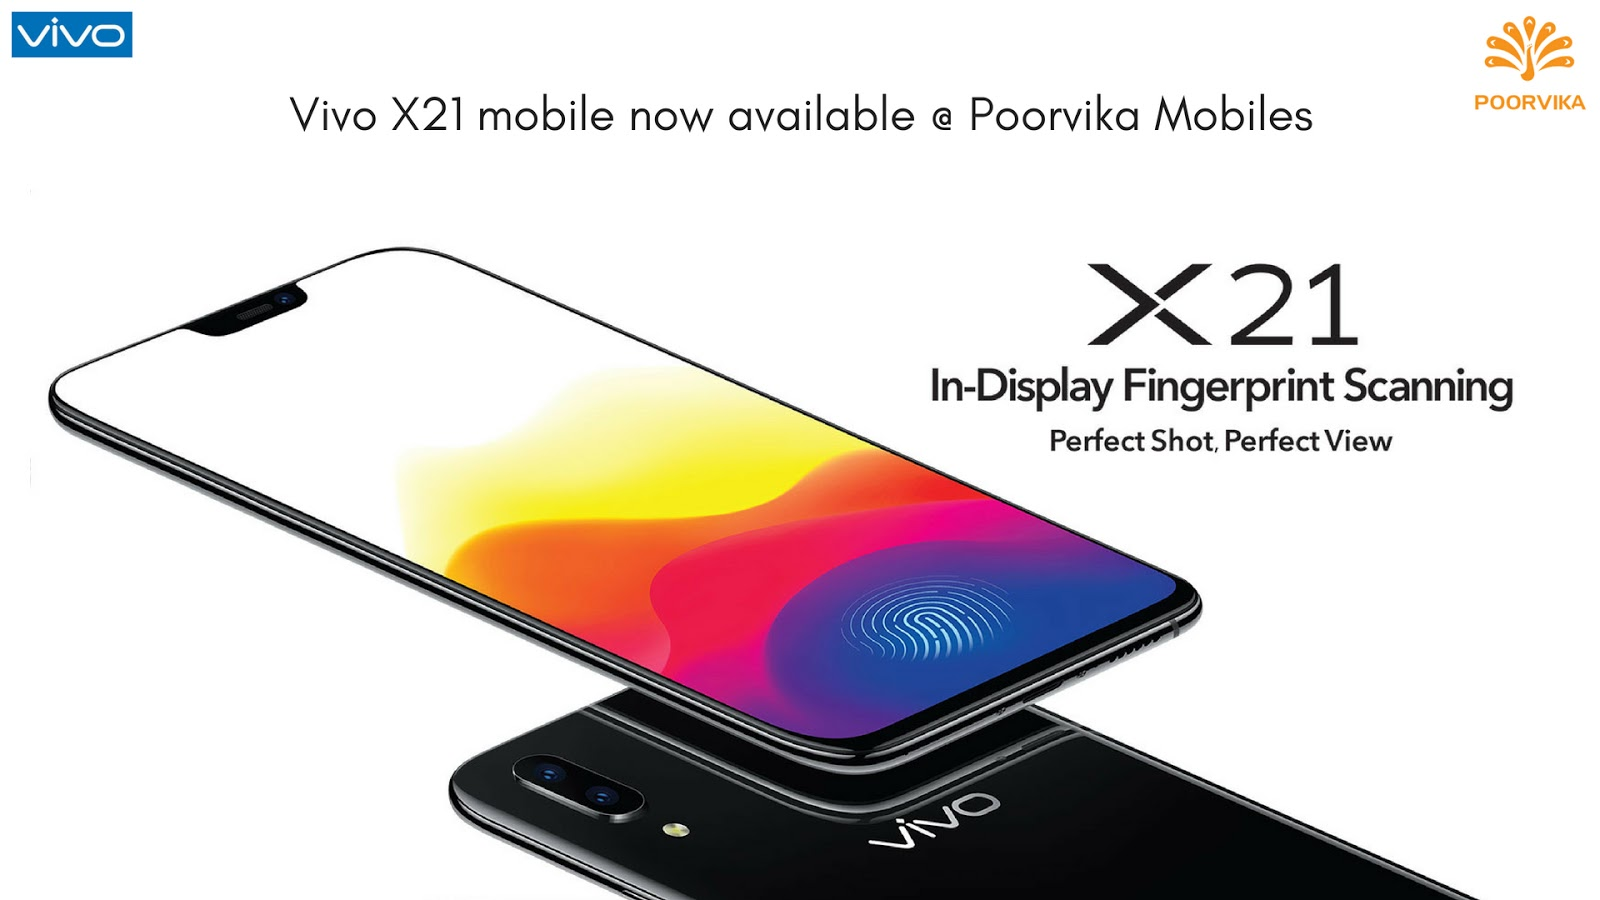 2018 Onlinemobileshopping Vivo Y21 16gb Grey Free Gift Mobiles Proudly Presents X21 The Mobile Is Made With Worlds First In Display Fingerprint Scanning Option Its A New Invention